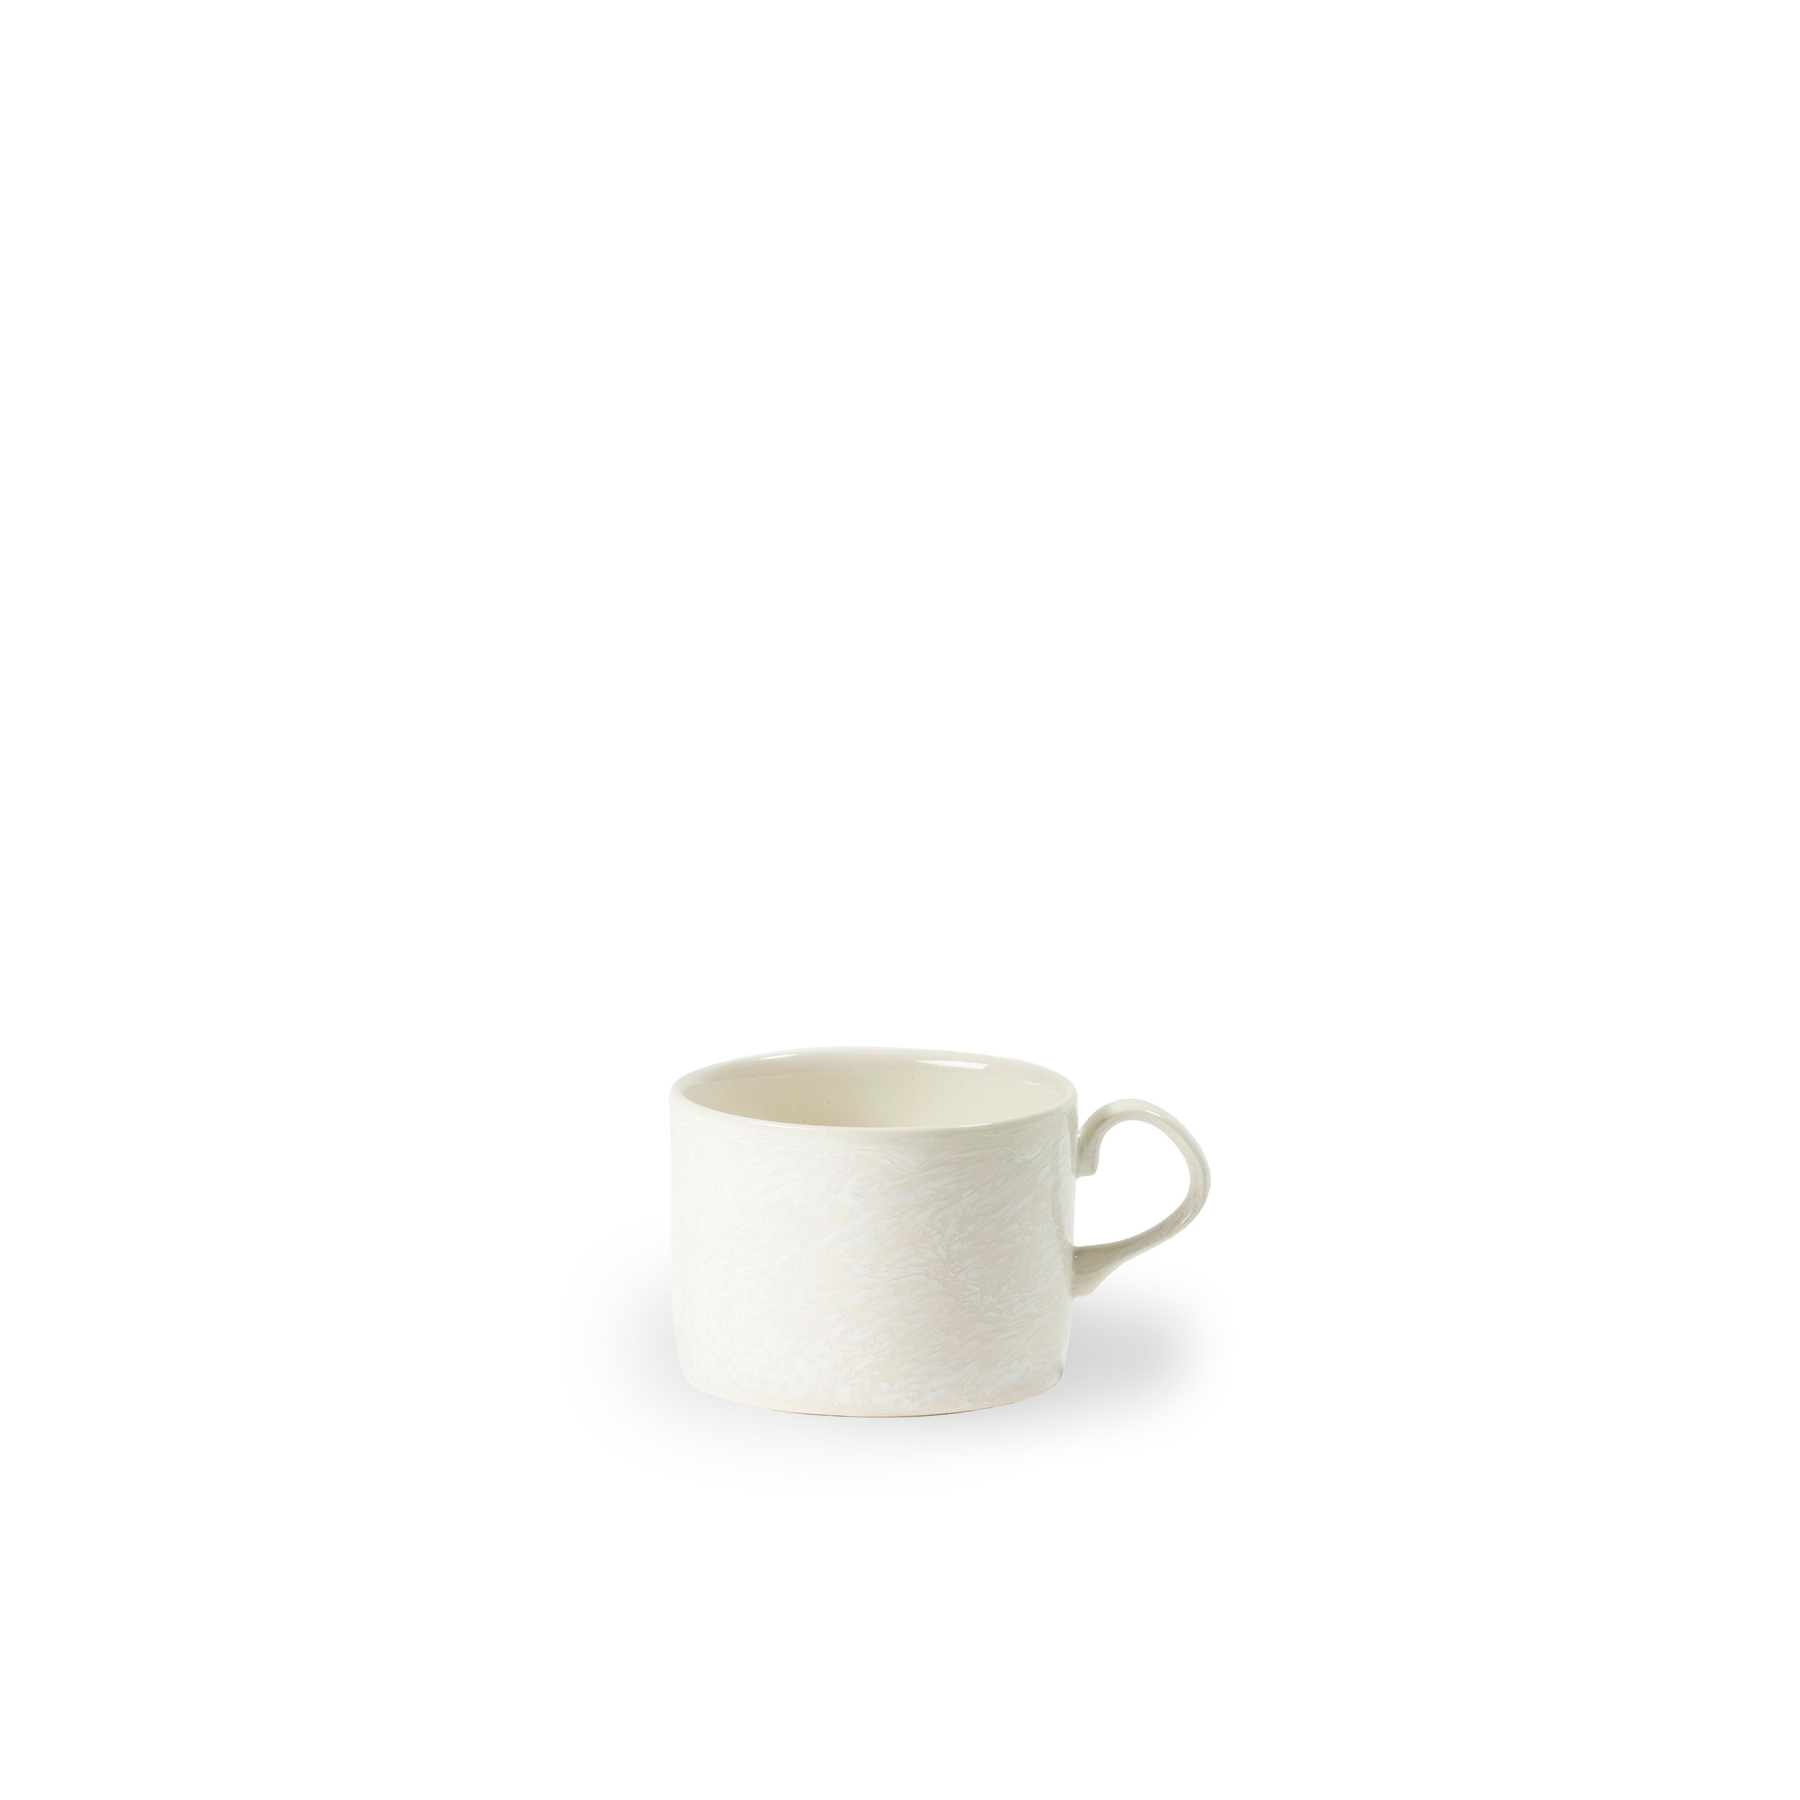 Sleet Mug - Sleet by 1882 Ltd. is a collection of uniquely hand glazed tableware – a true testament to the skill of the Potter. So many factors make up the pattern of the glaze; from the heat of the piece to the weight of the glaze. The Potter works each piece individually making each item unique. Made in England. | Matter of Stuff